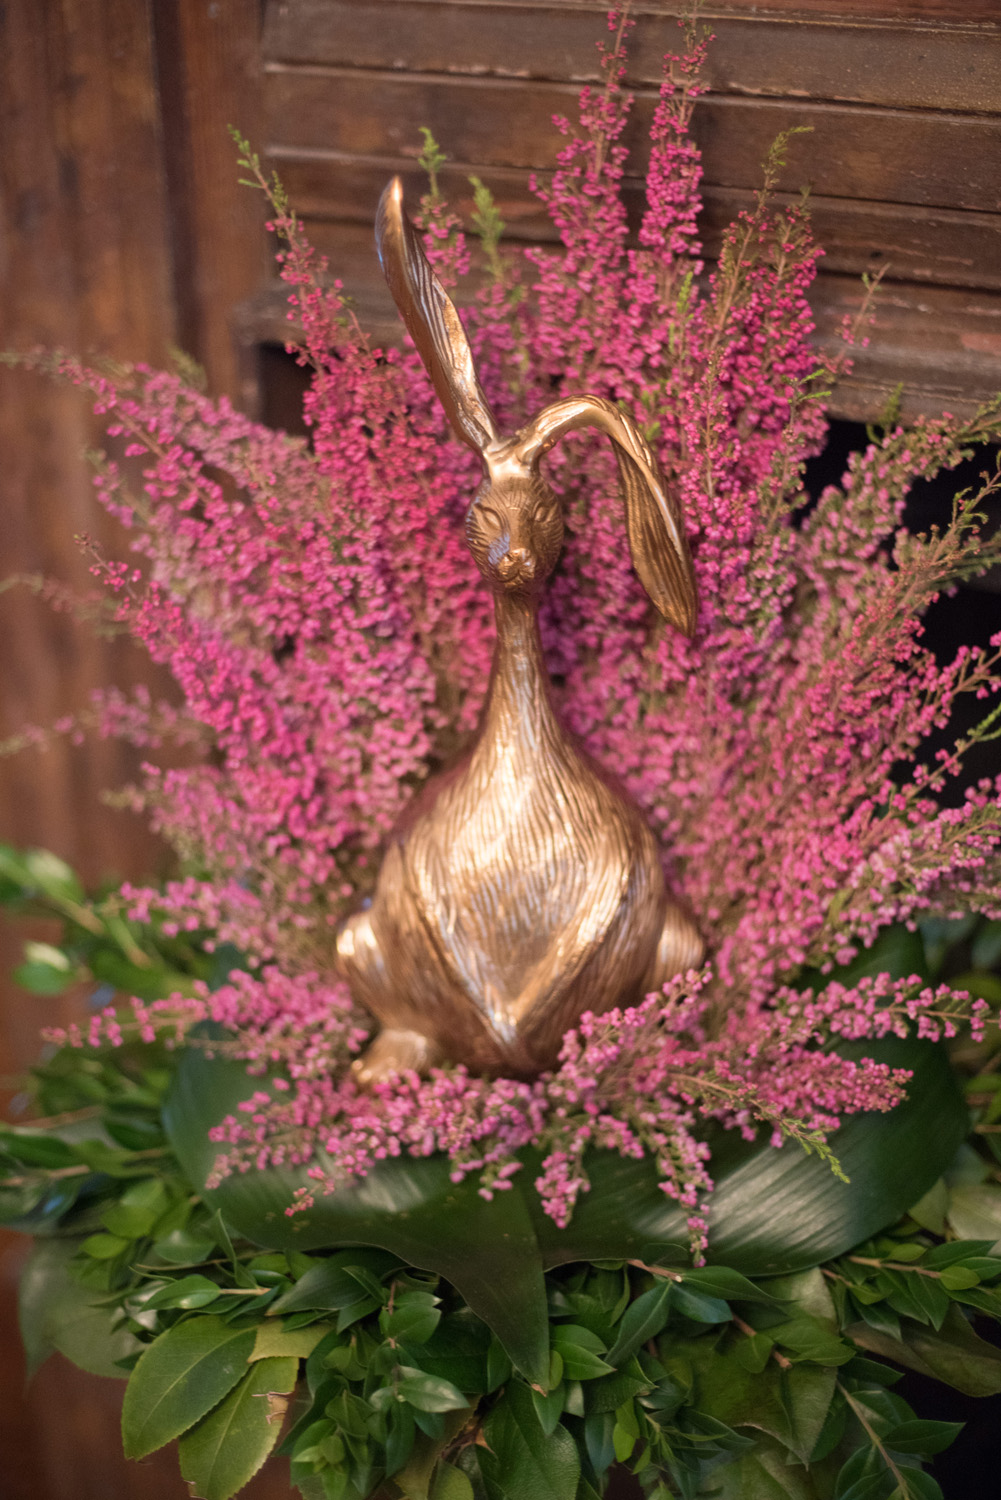 Gold Rabbit Statue